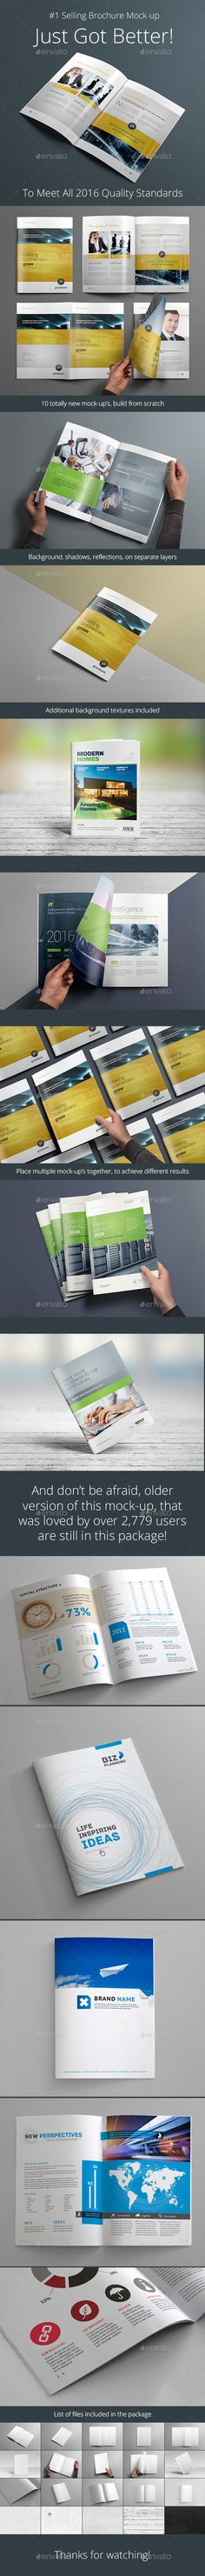 Buy Photorealistic Brochure Mock-up by on GraphicRiver. Best selling brochure mock-up received major update, to meet 2016 quality standards, here is some of the new features. Brochure Mockup, Brochure Template, Brochure Ideas, Graphic Design Templates, Mockup Templates, Mockup Photoshop, Change Background, Business Card Logo, Marketing